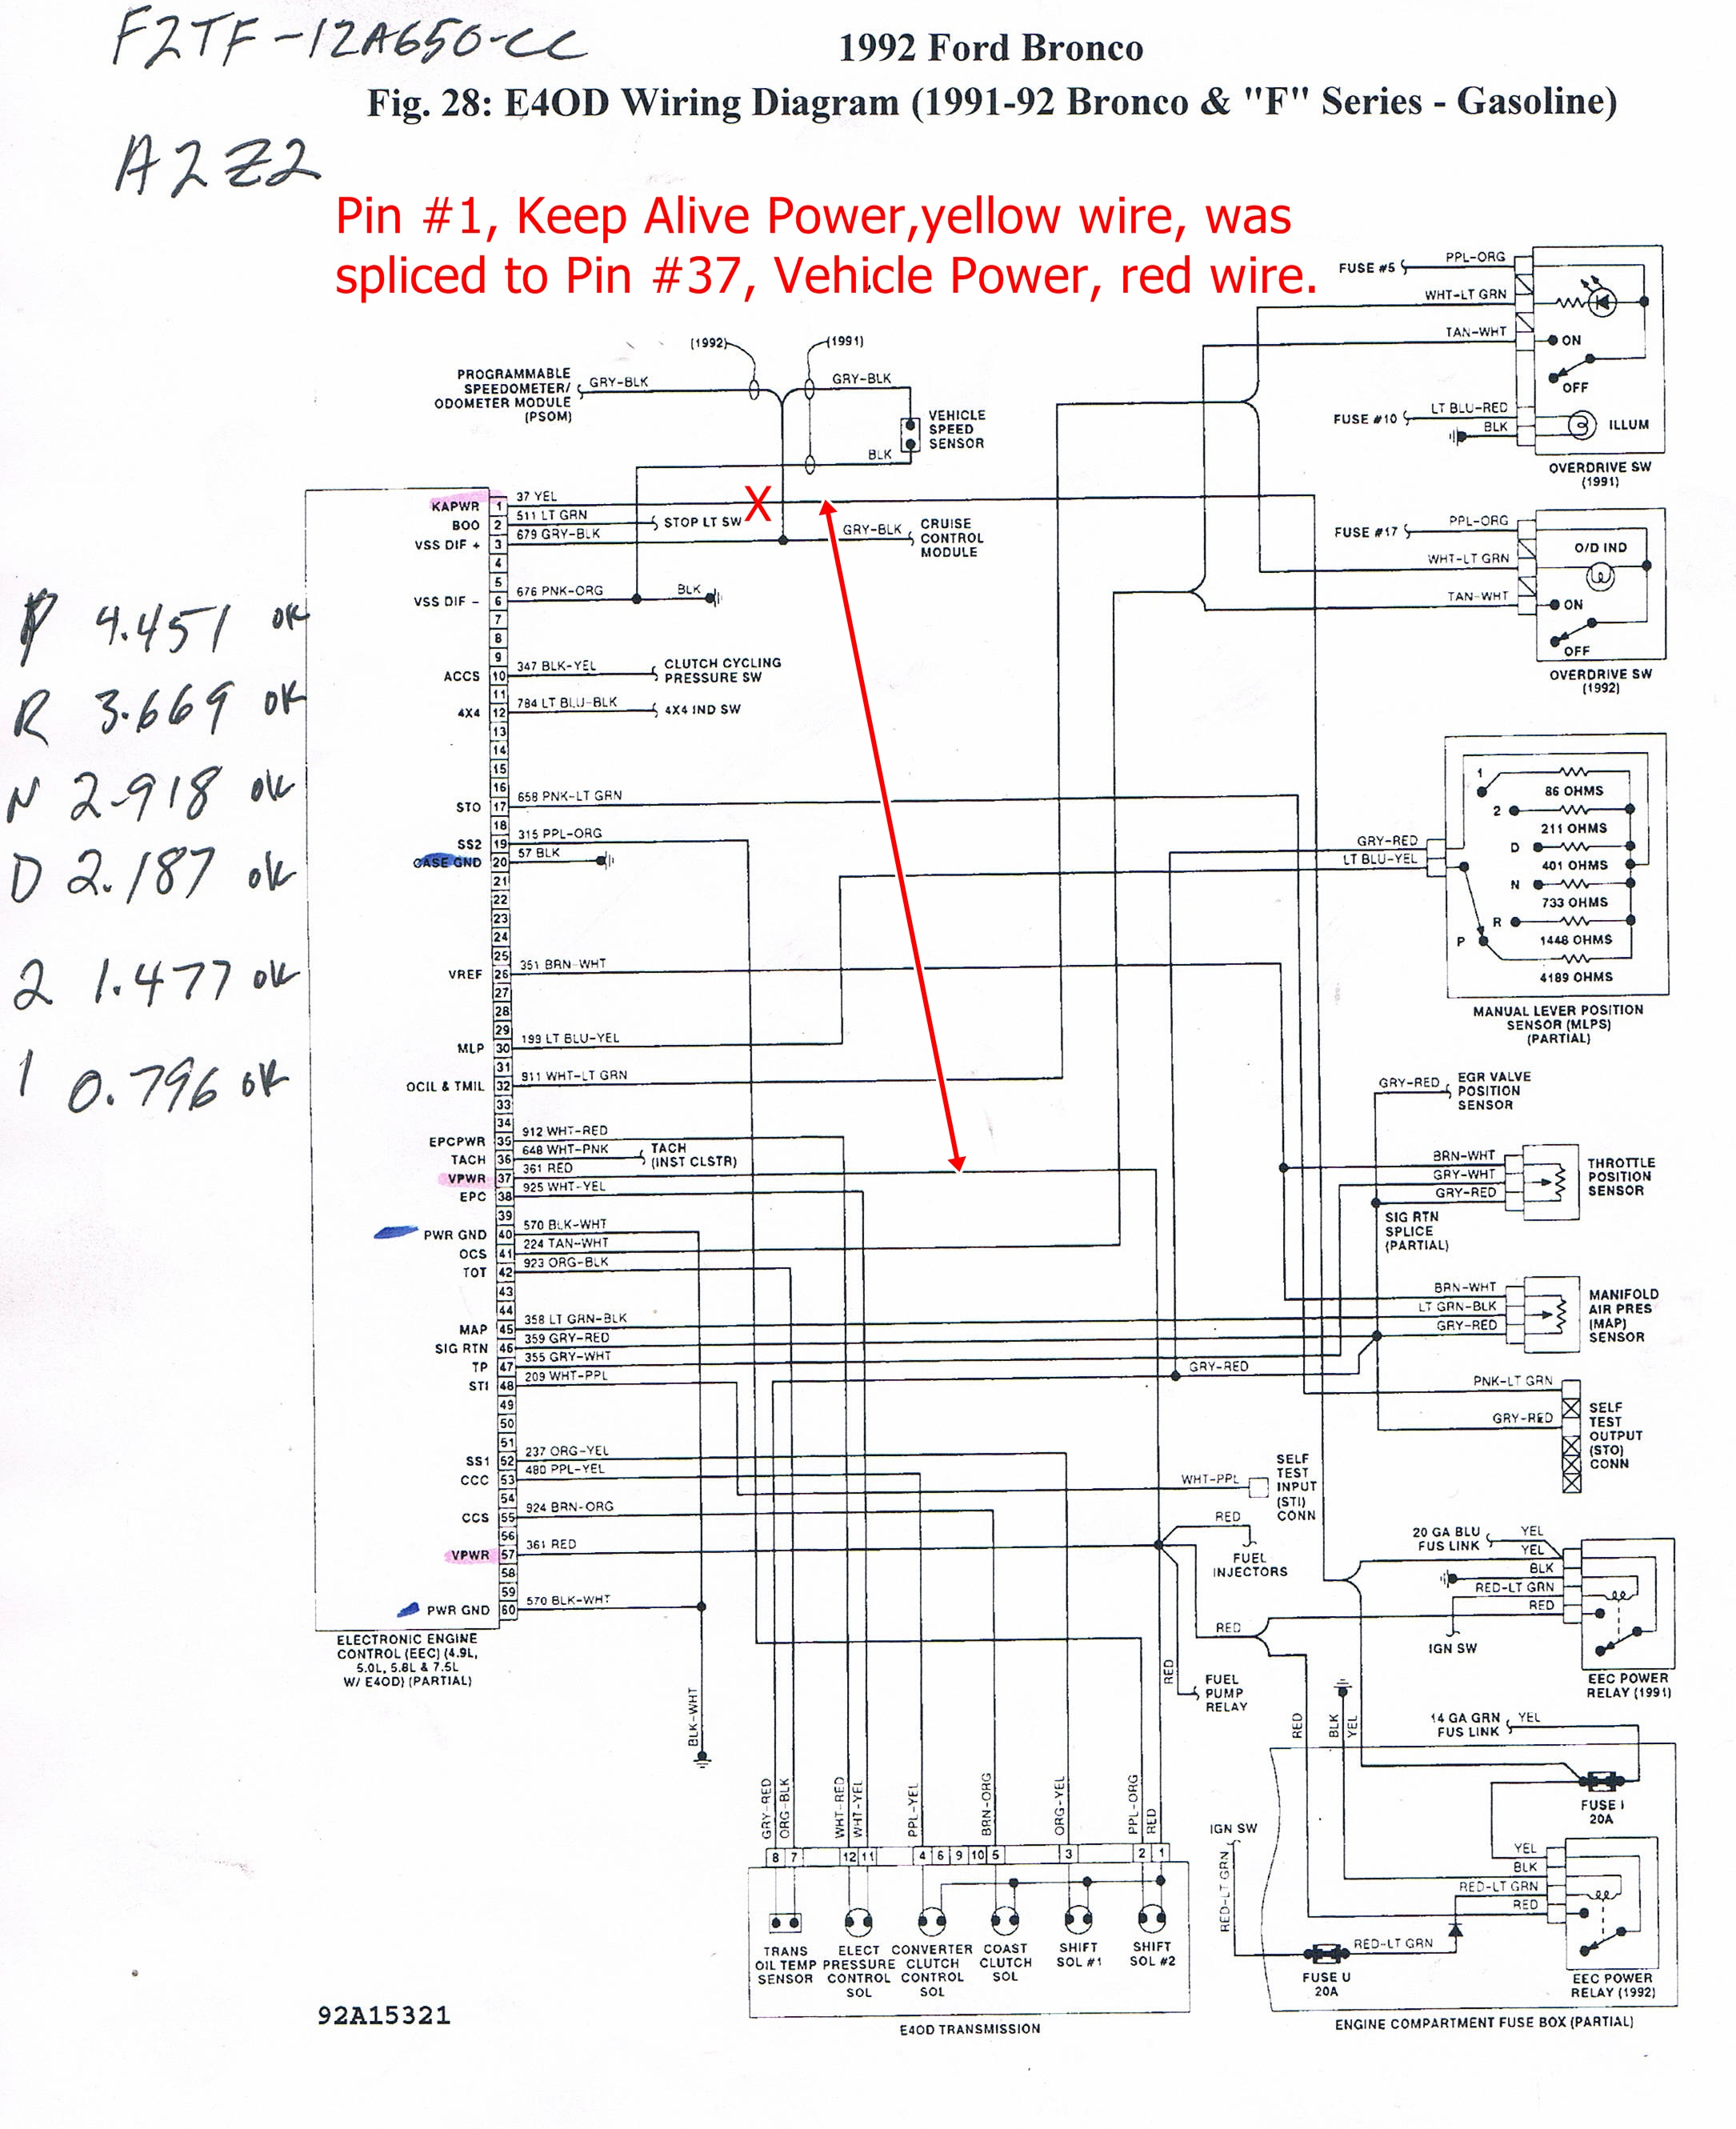 2002 Buick Lesabre Wiring Diagram from static-cdn.imageservice.cloud